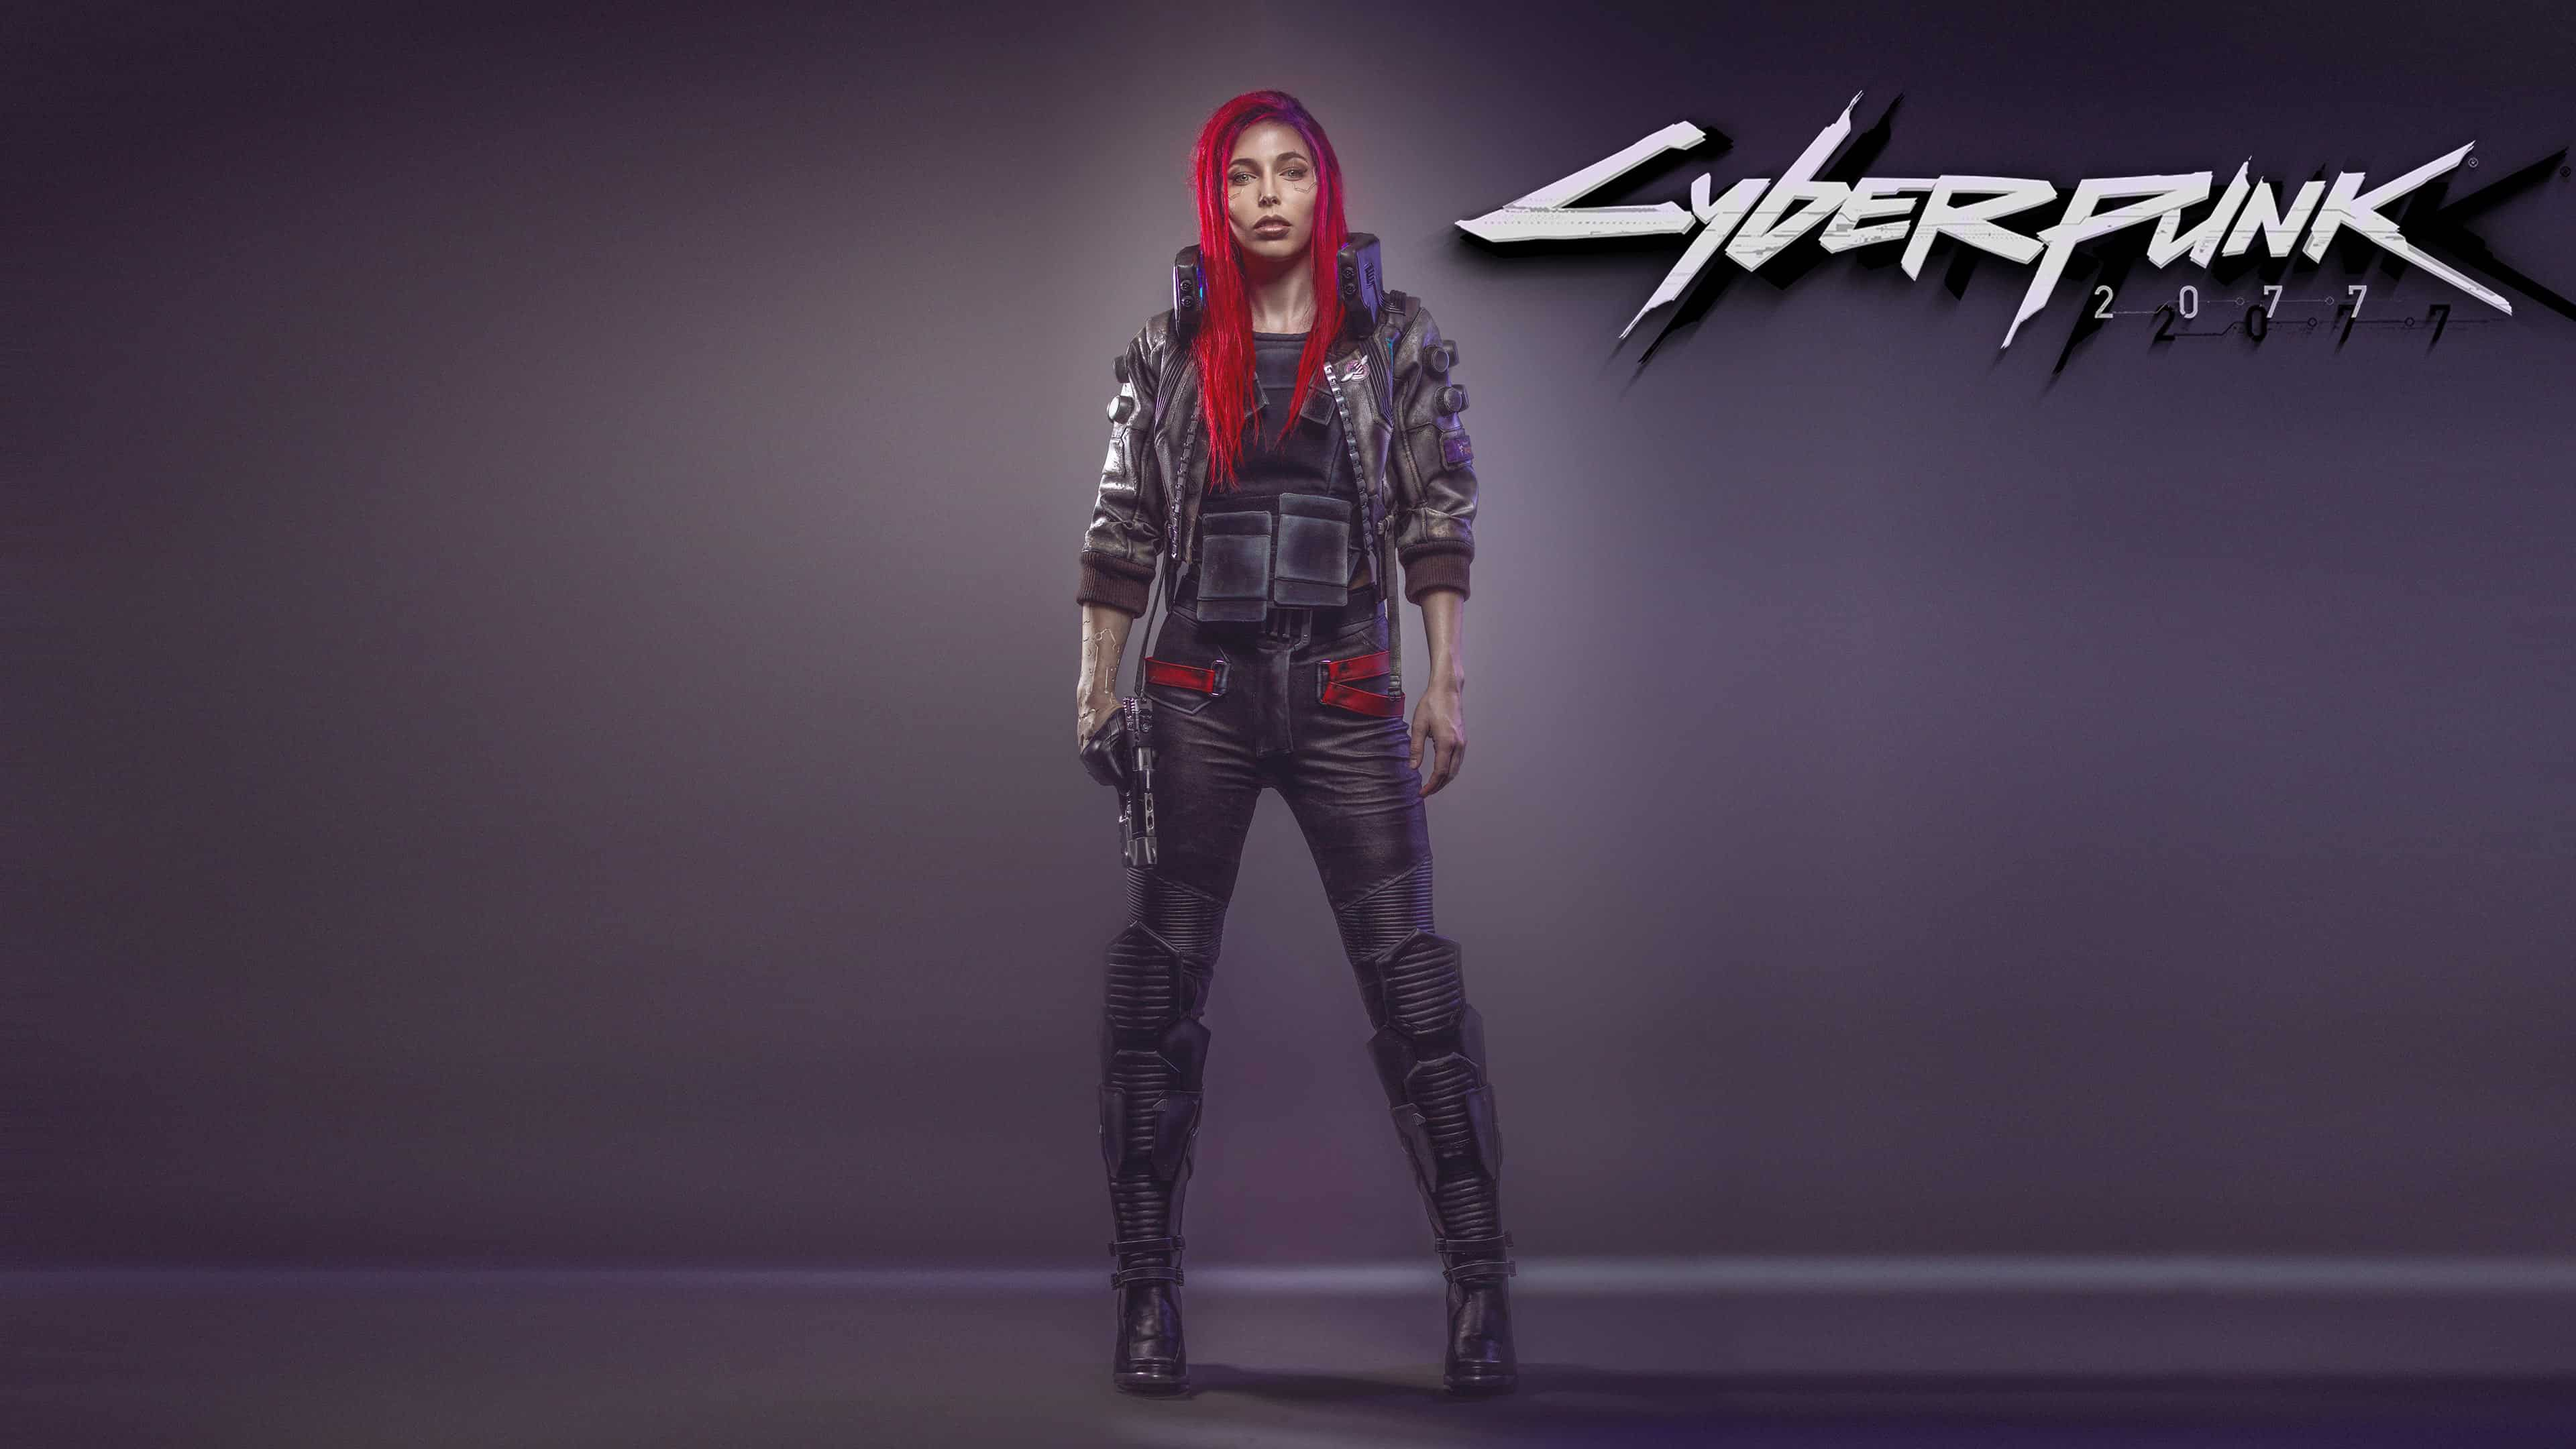 Cars Wallpaper Hd Wallpaper Cyberpunk 2077 Female Uhd 4k Wallpaper Pixelz